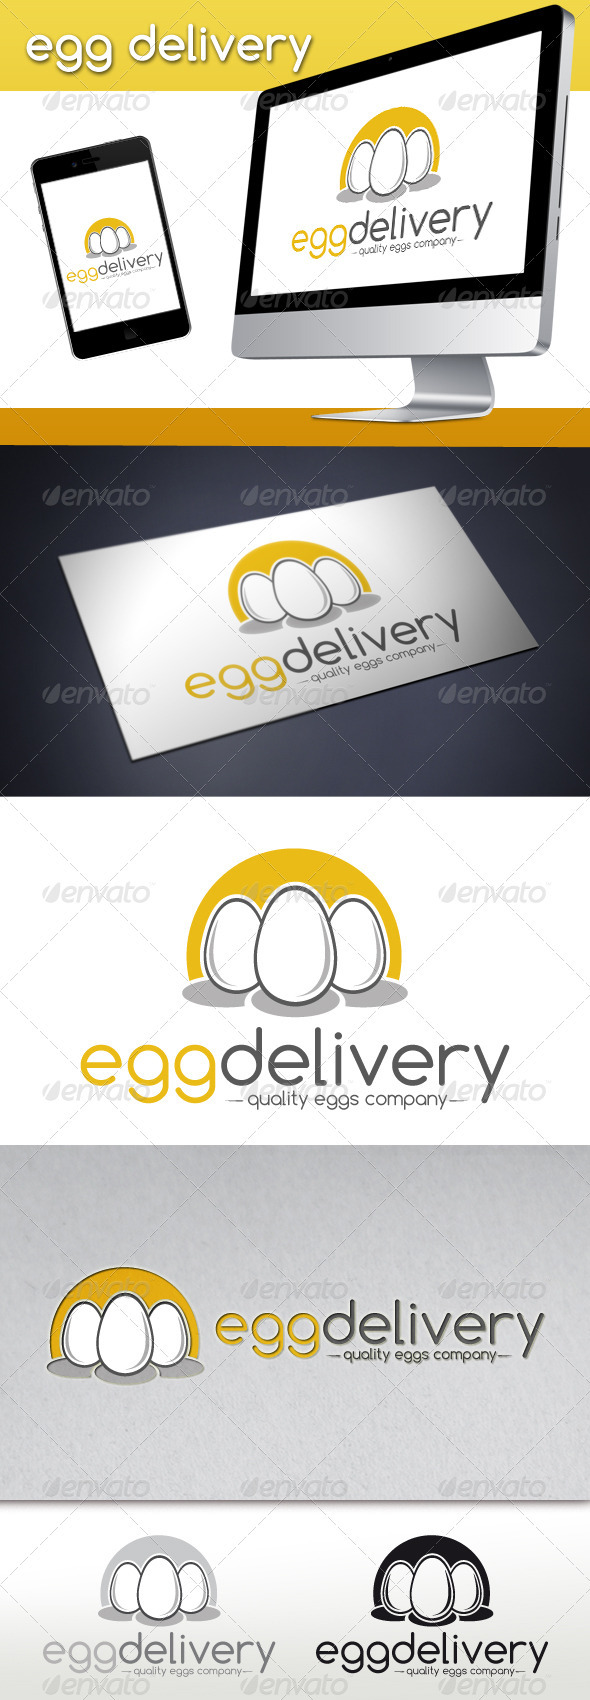 Egg Delivery Logo Template - Food Logo Templates